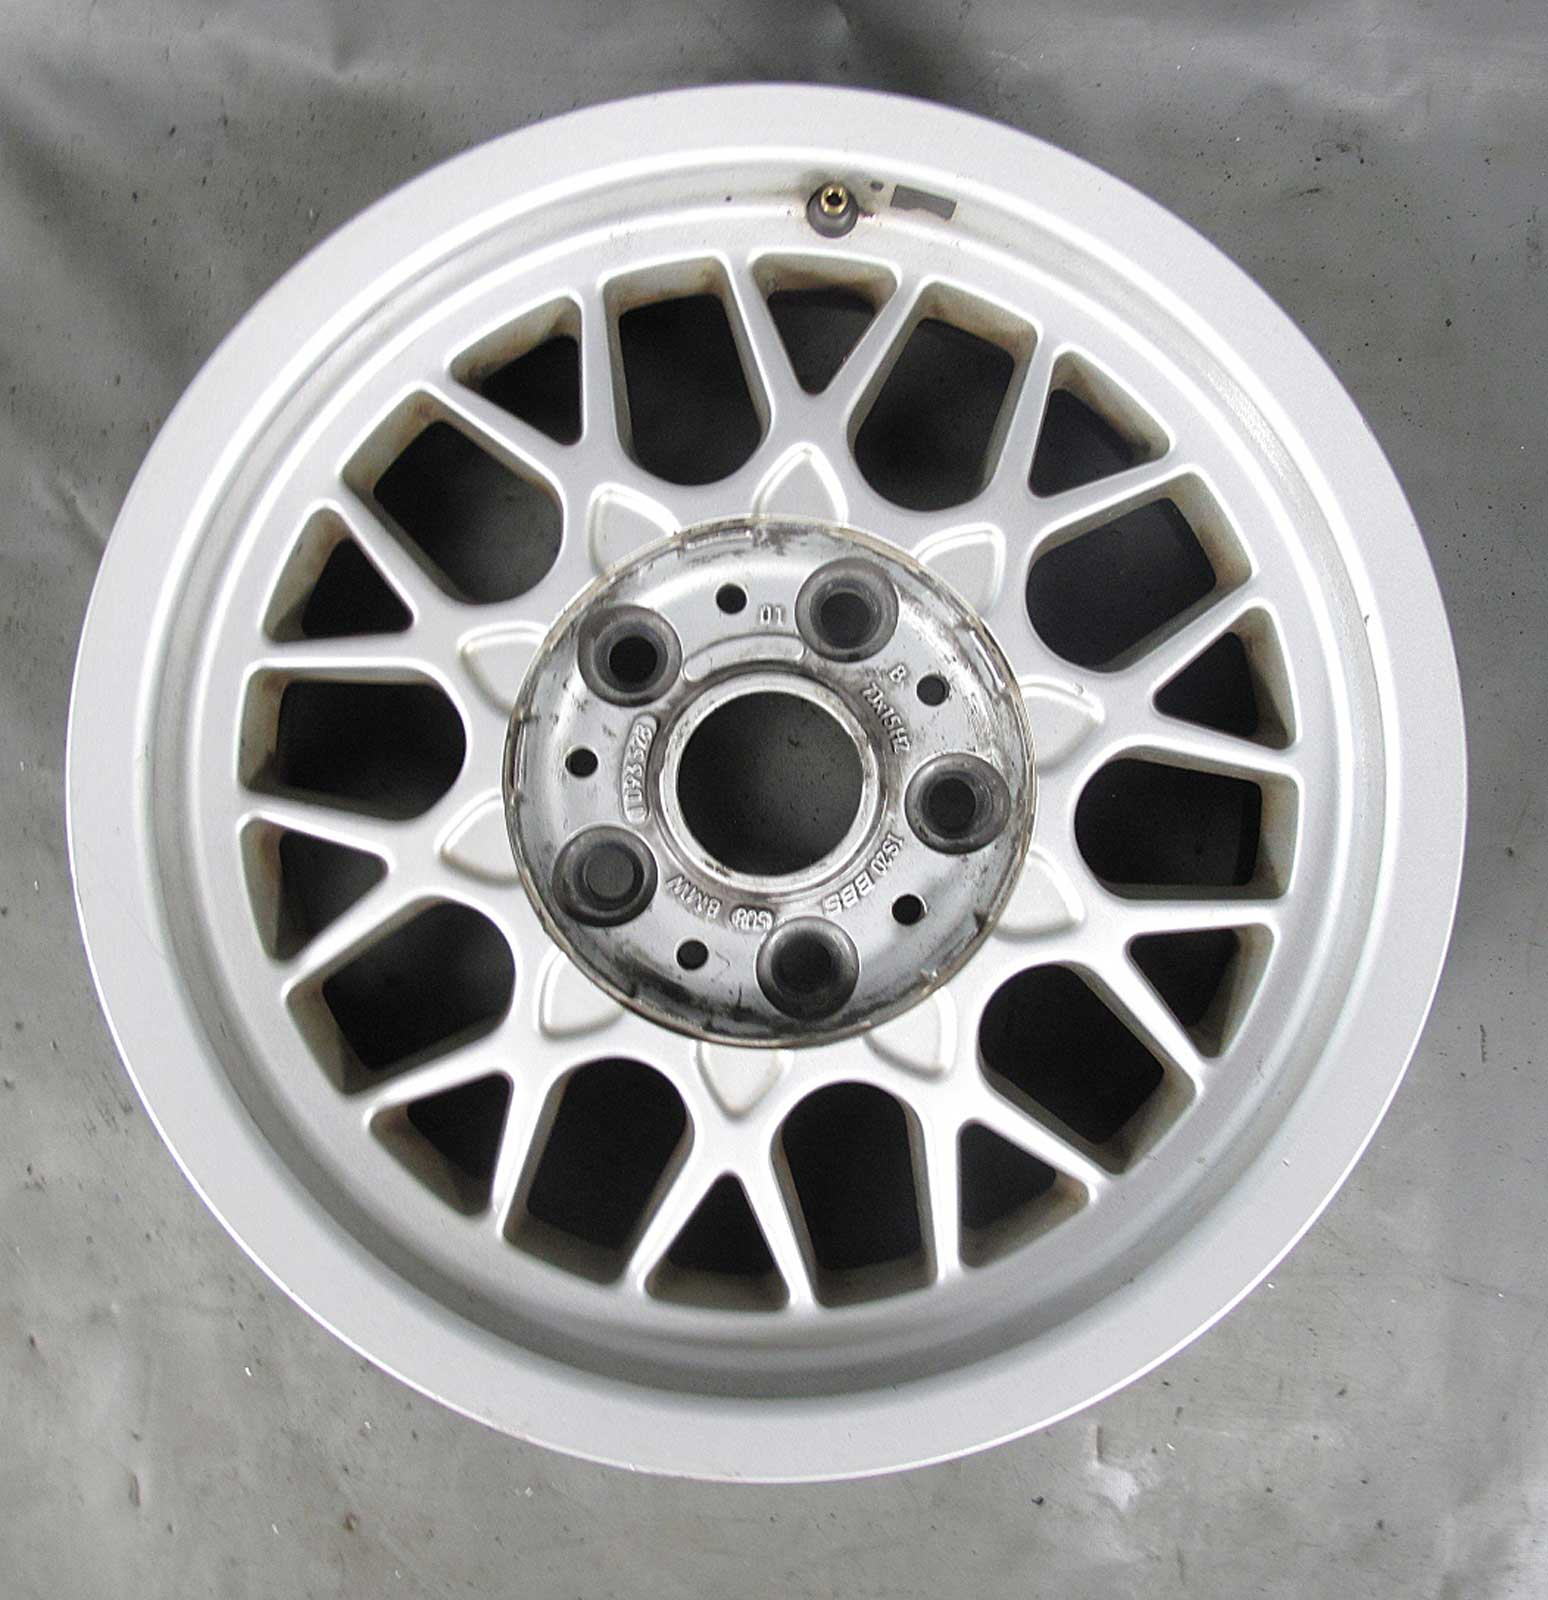 genuine styles rim very winter tyres info vredestein style alloys ad bmw showroom spoke p used inc good id product vgc